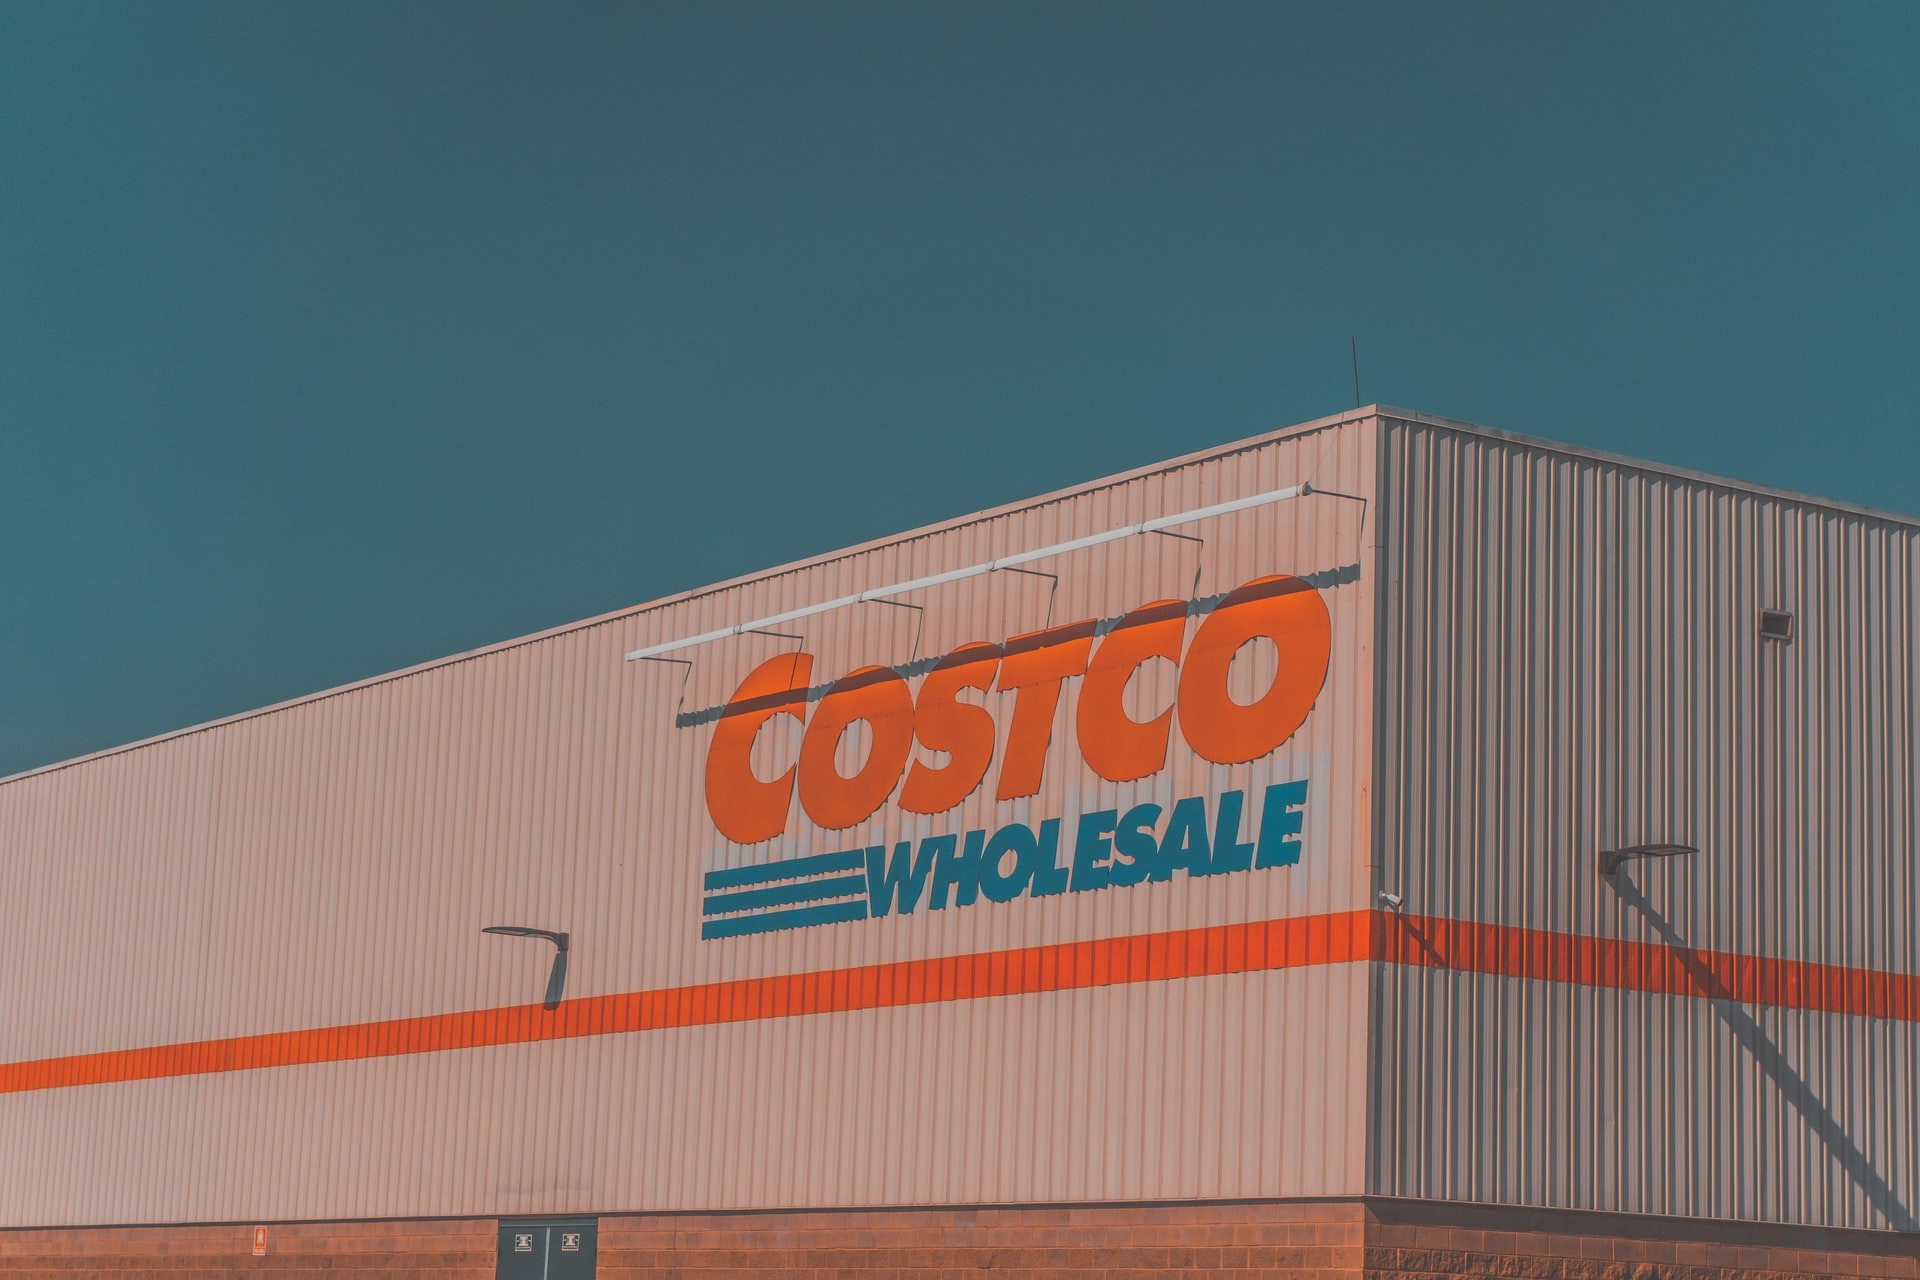 Costco-pigs